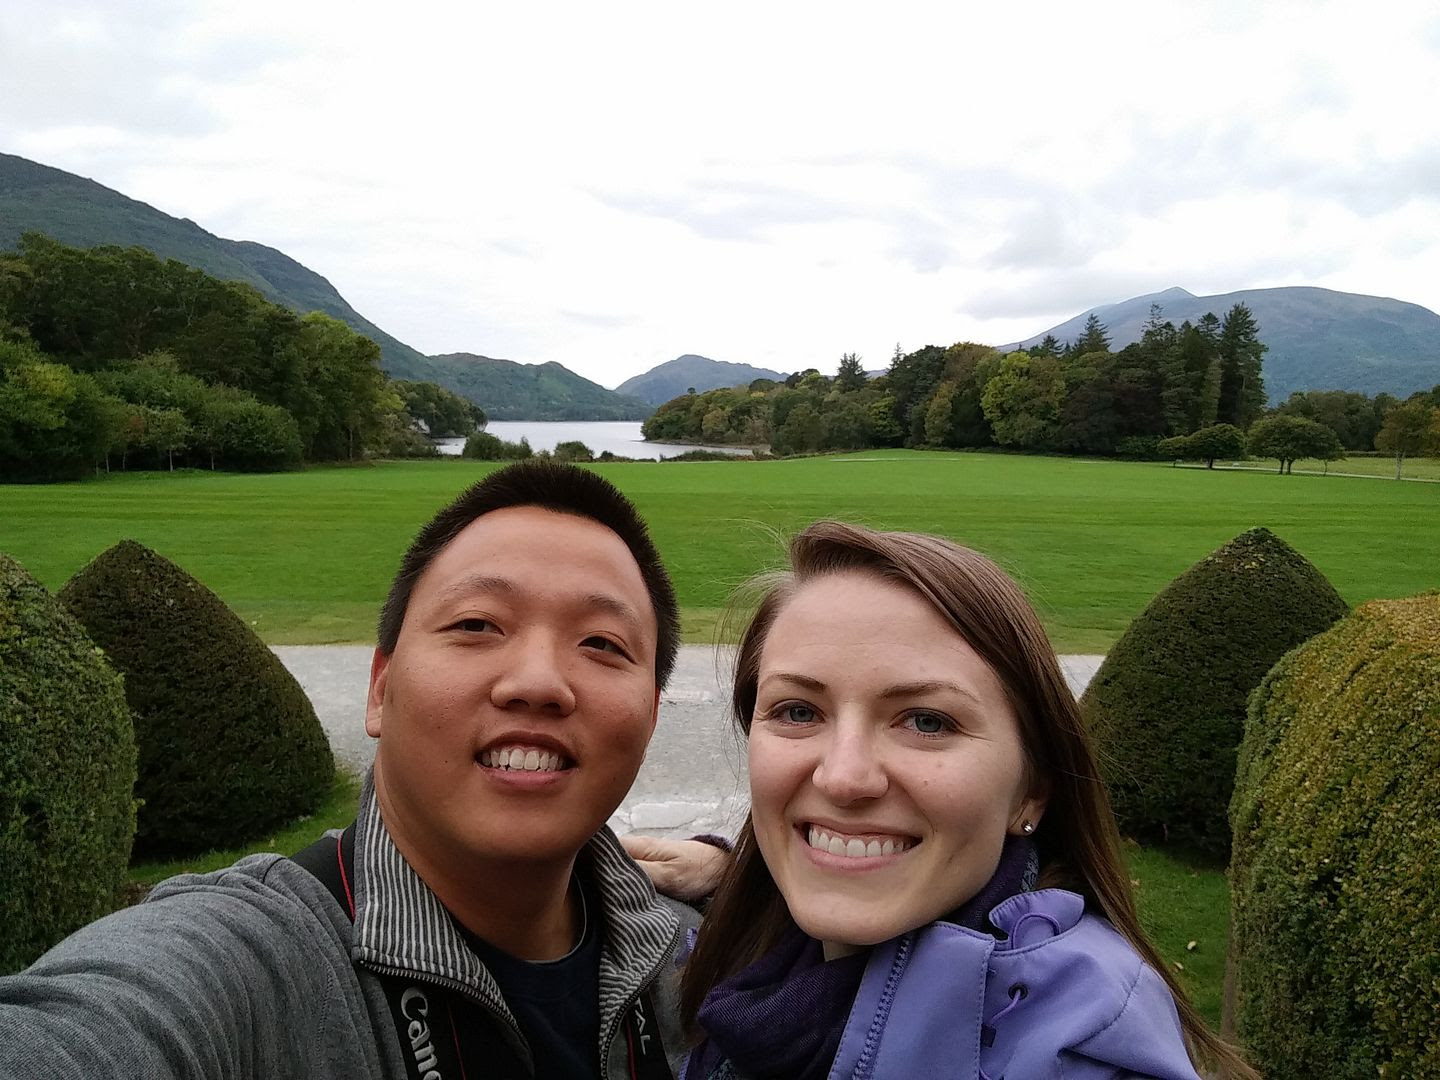 Muckross House near Killarney, Ireland photo  IMG_20151015_111246_zpshxb5qy7u.jpg